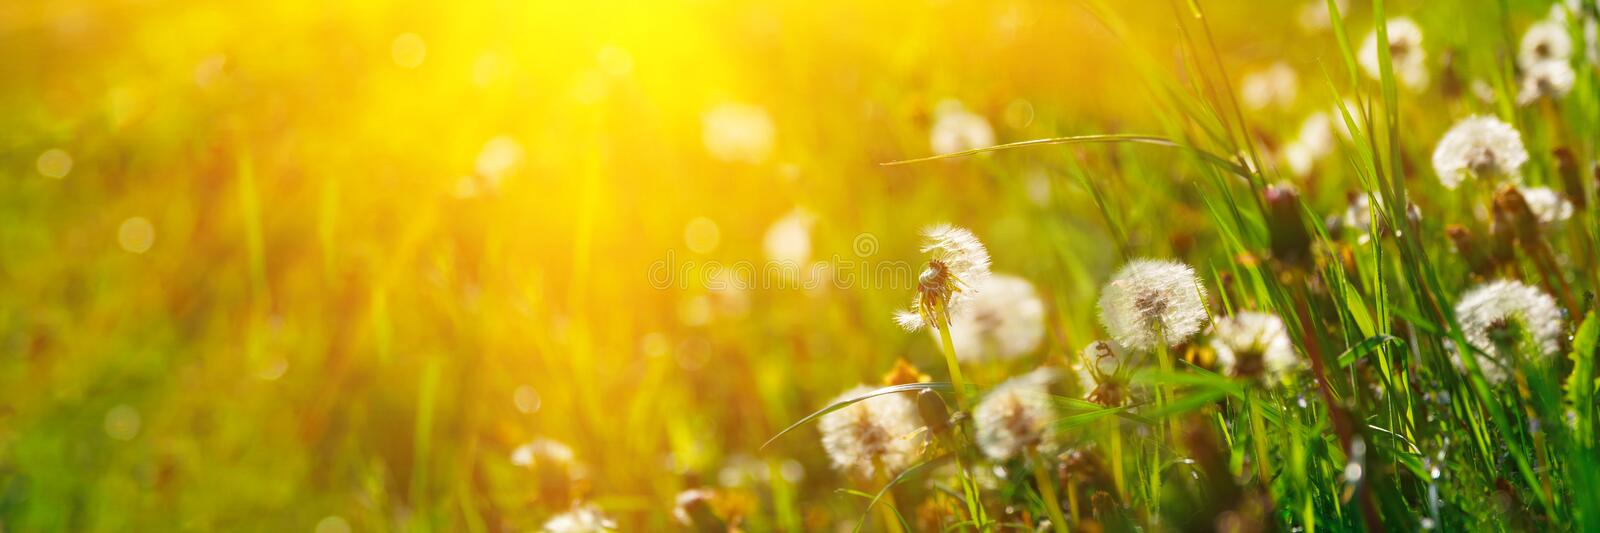 Banner 3:1. Close up dandelion flowers with sunlight rays. Spring background. Copy space. Soft focus royalty free stock photos